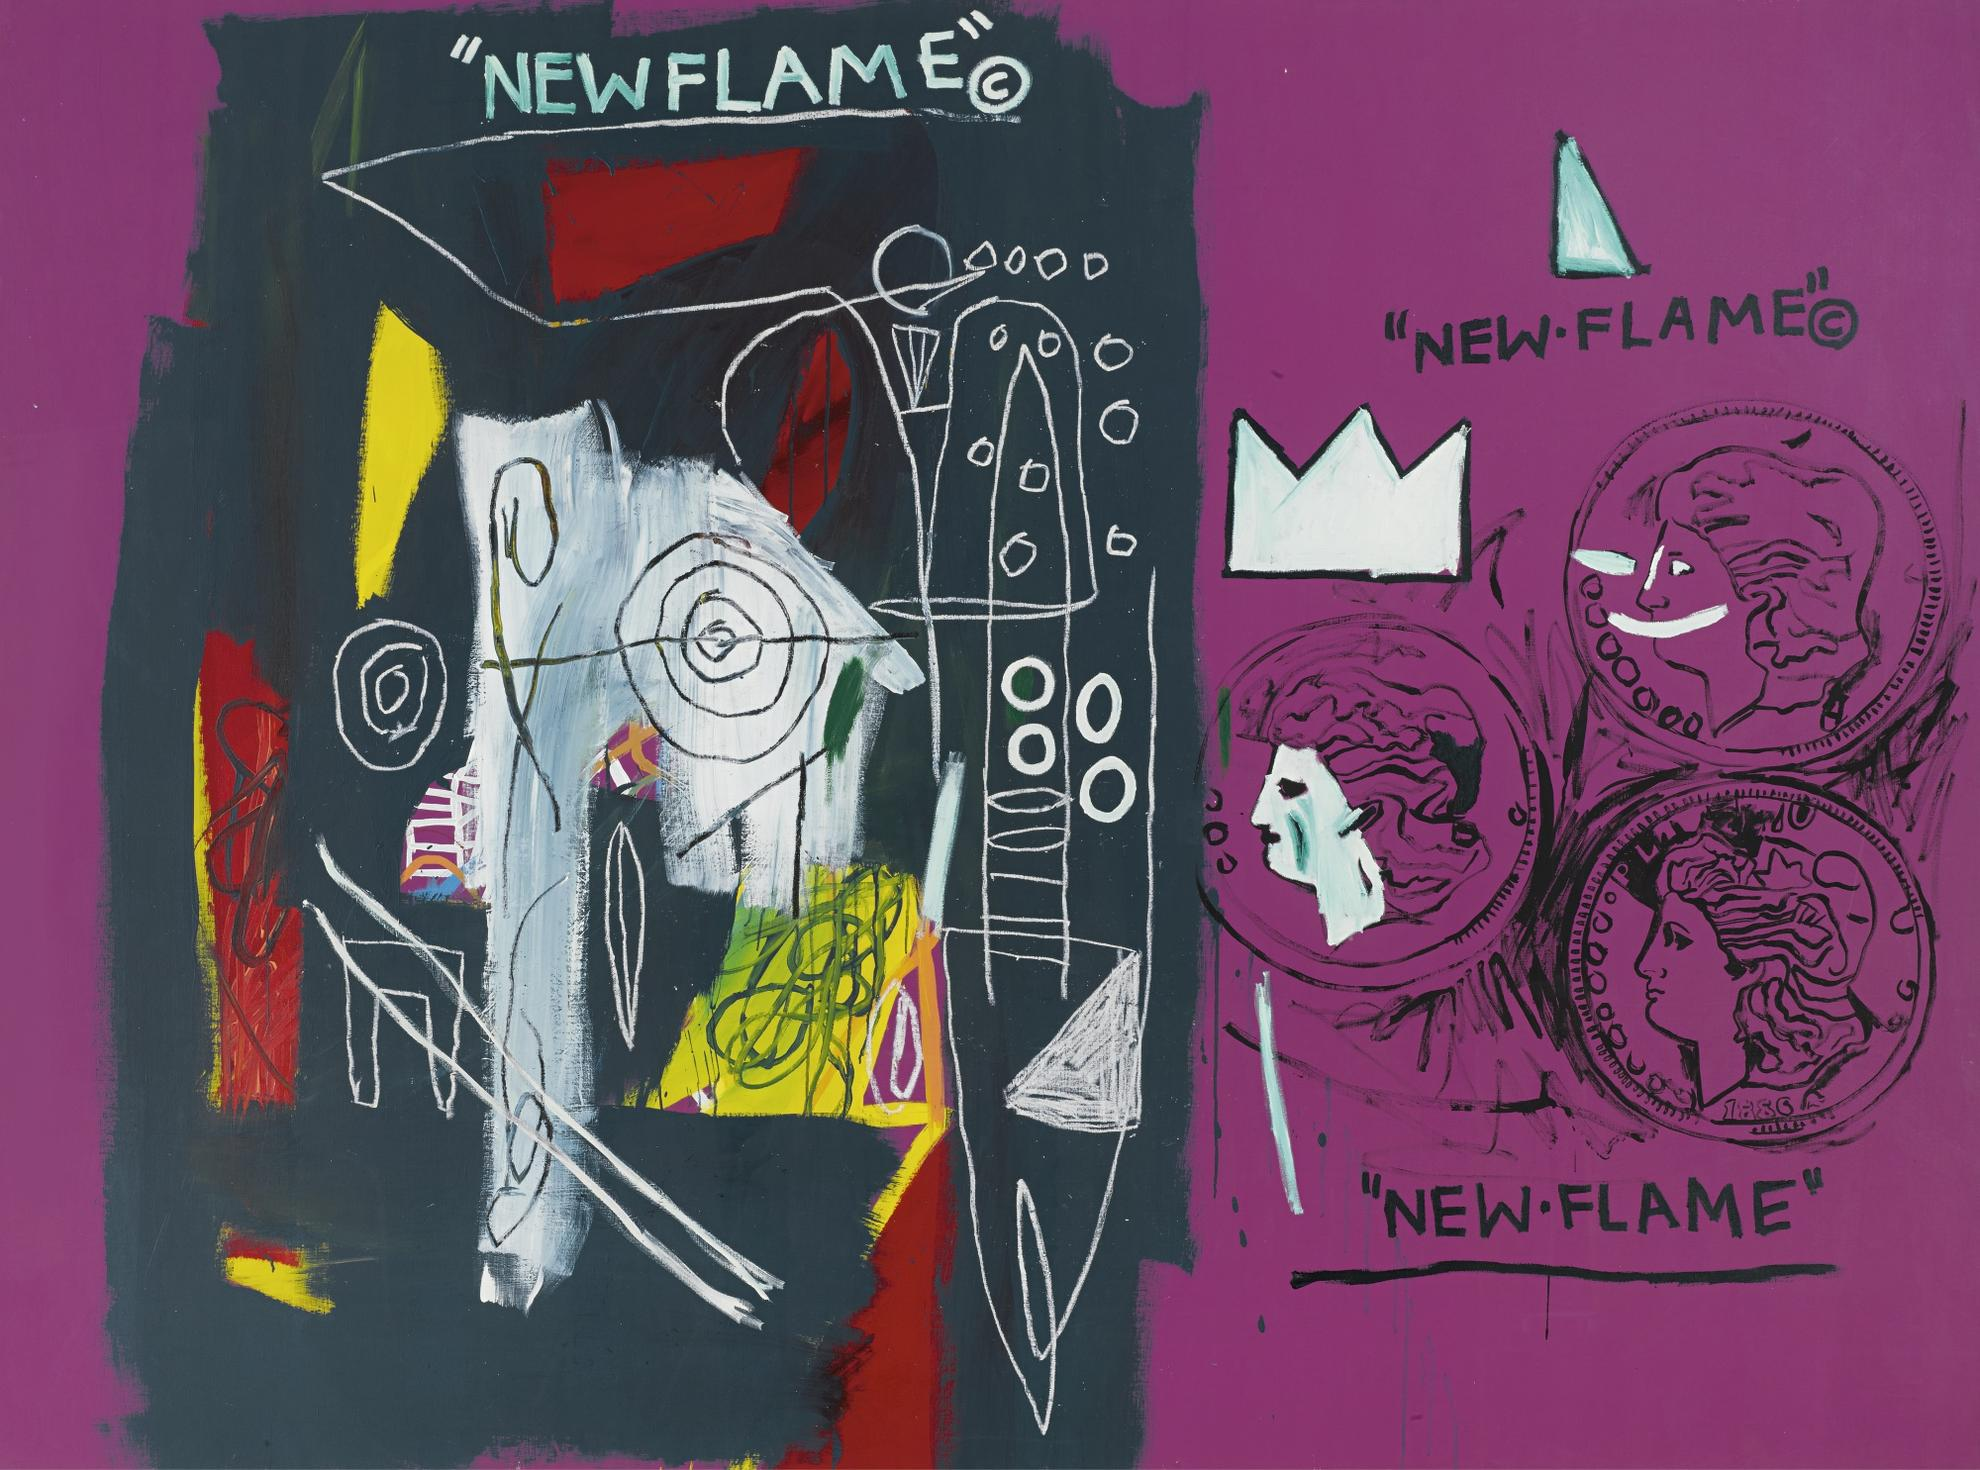 Andy Warhol And Jean-Michel Basquiat - New Flame-1985